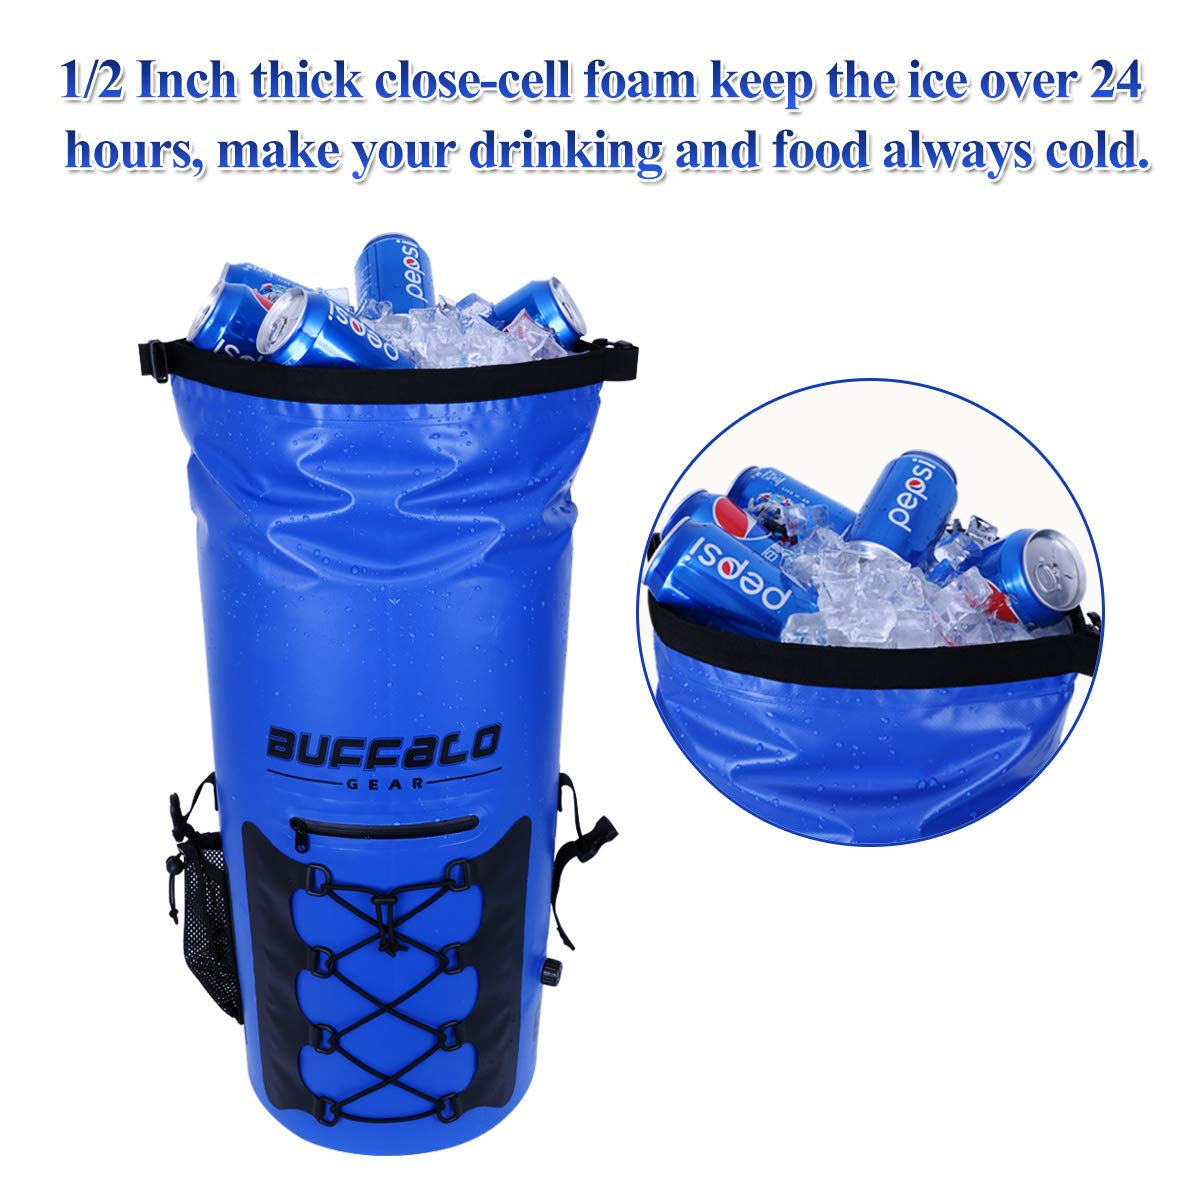 Buffalo Gear Portable Insulated Backpack Cooler Bag – Hands-free and Collapsible, Waterproof and Soft-Sided Cooler Backpack for Hiking, the Beach, Picnics,Camping,Fishing – Royal Blue,35 Liters,30 Can